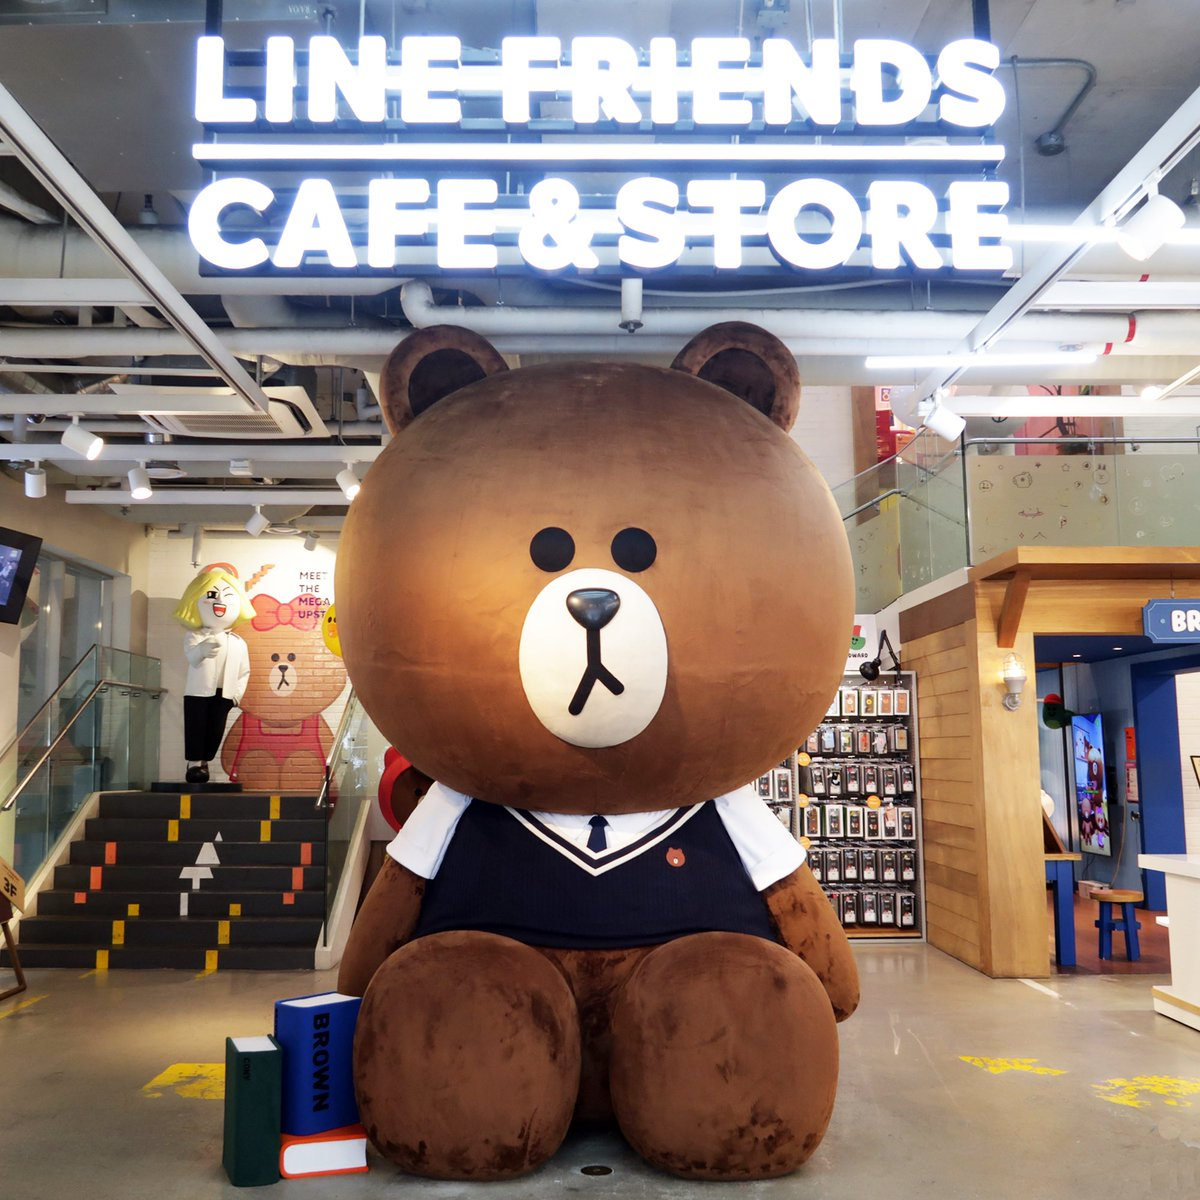 Getting ready for the new semester, eh BROWN? 🤓 ⠀ #BacktoSchool #BROWN #LINEFRIENDSSTORE #LINEFRIENDS